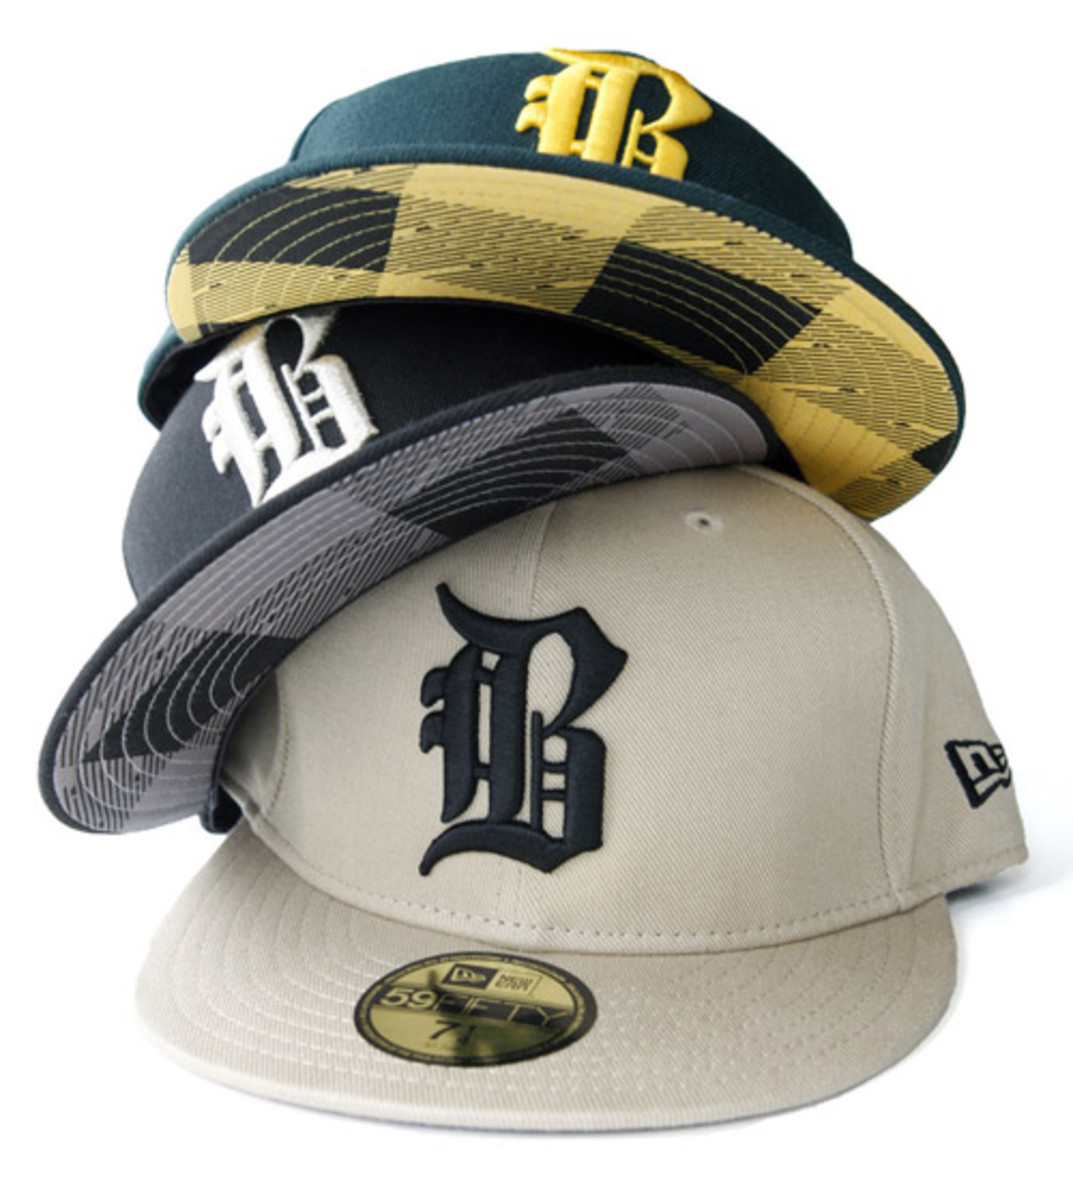 d9e70f46912 Benny Gold x New Era - Doughboy 2 - 59FIFTY Fitted Caps - Freshness Mag